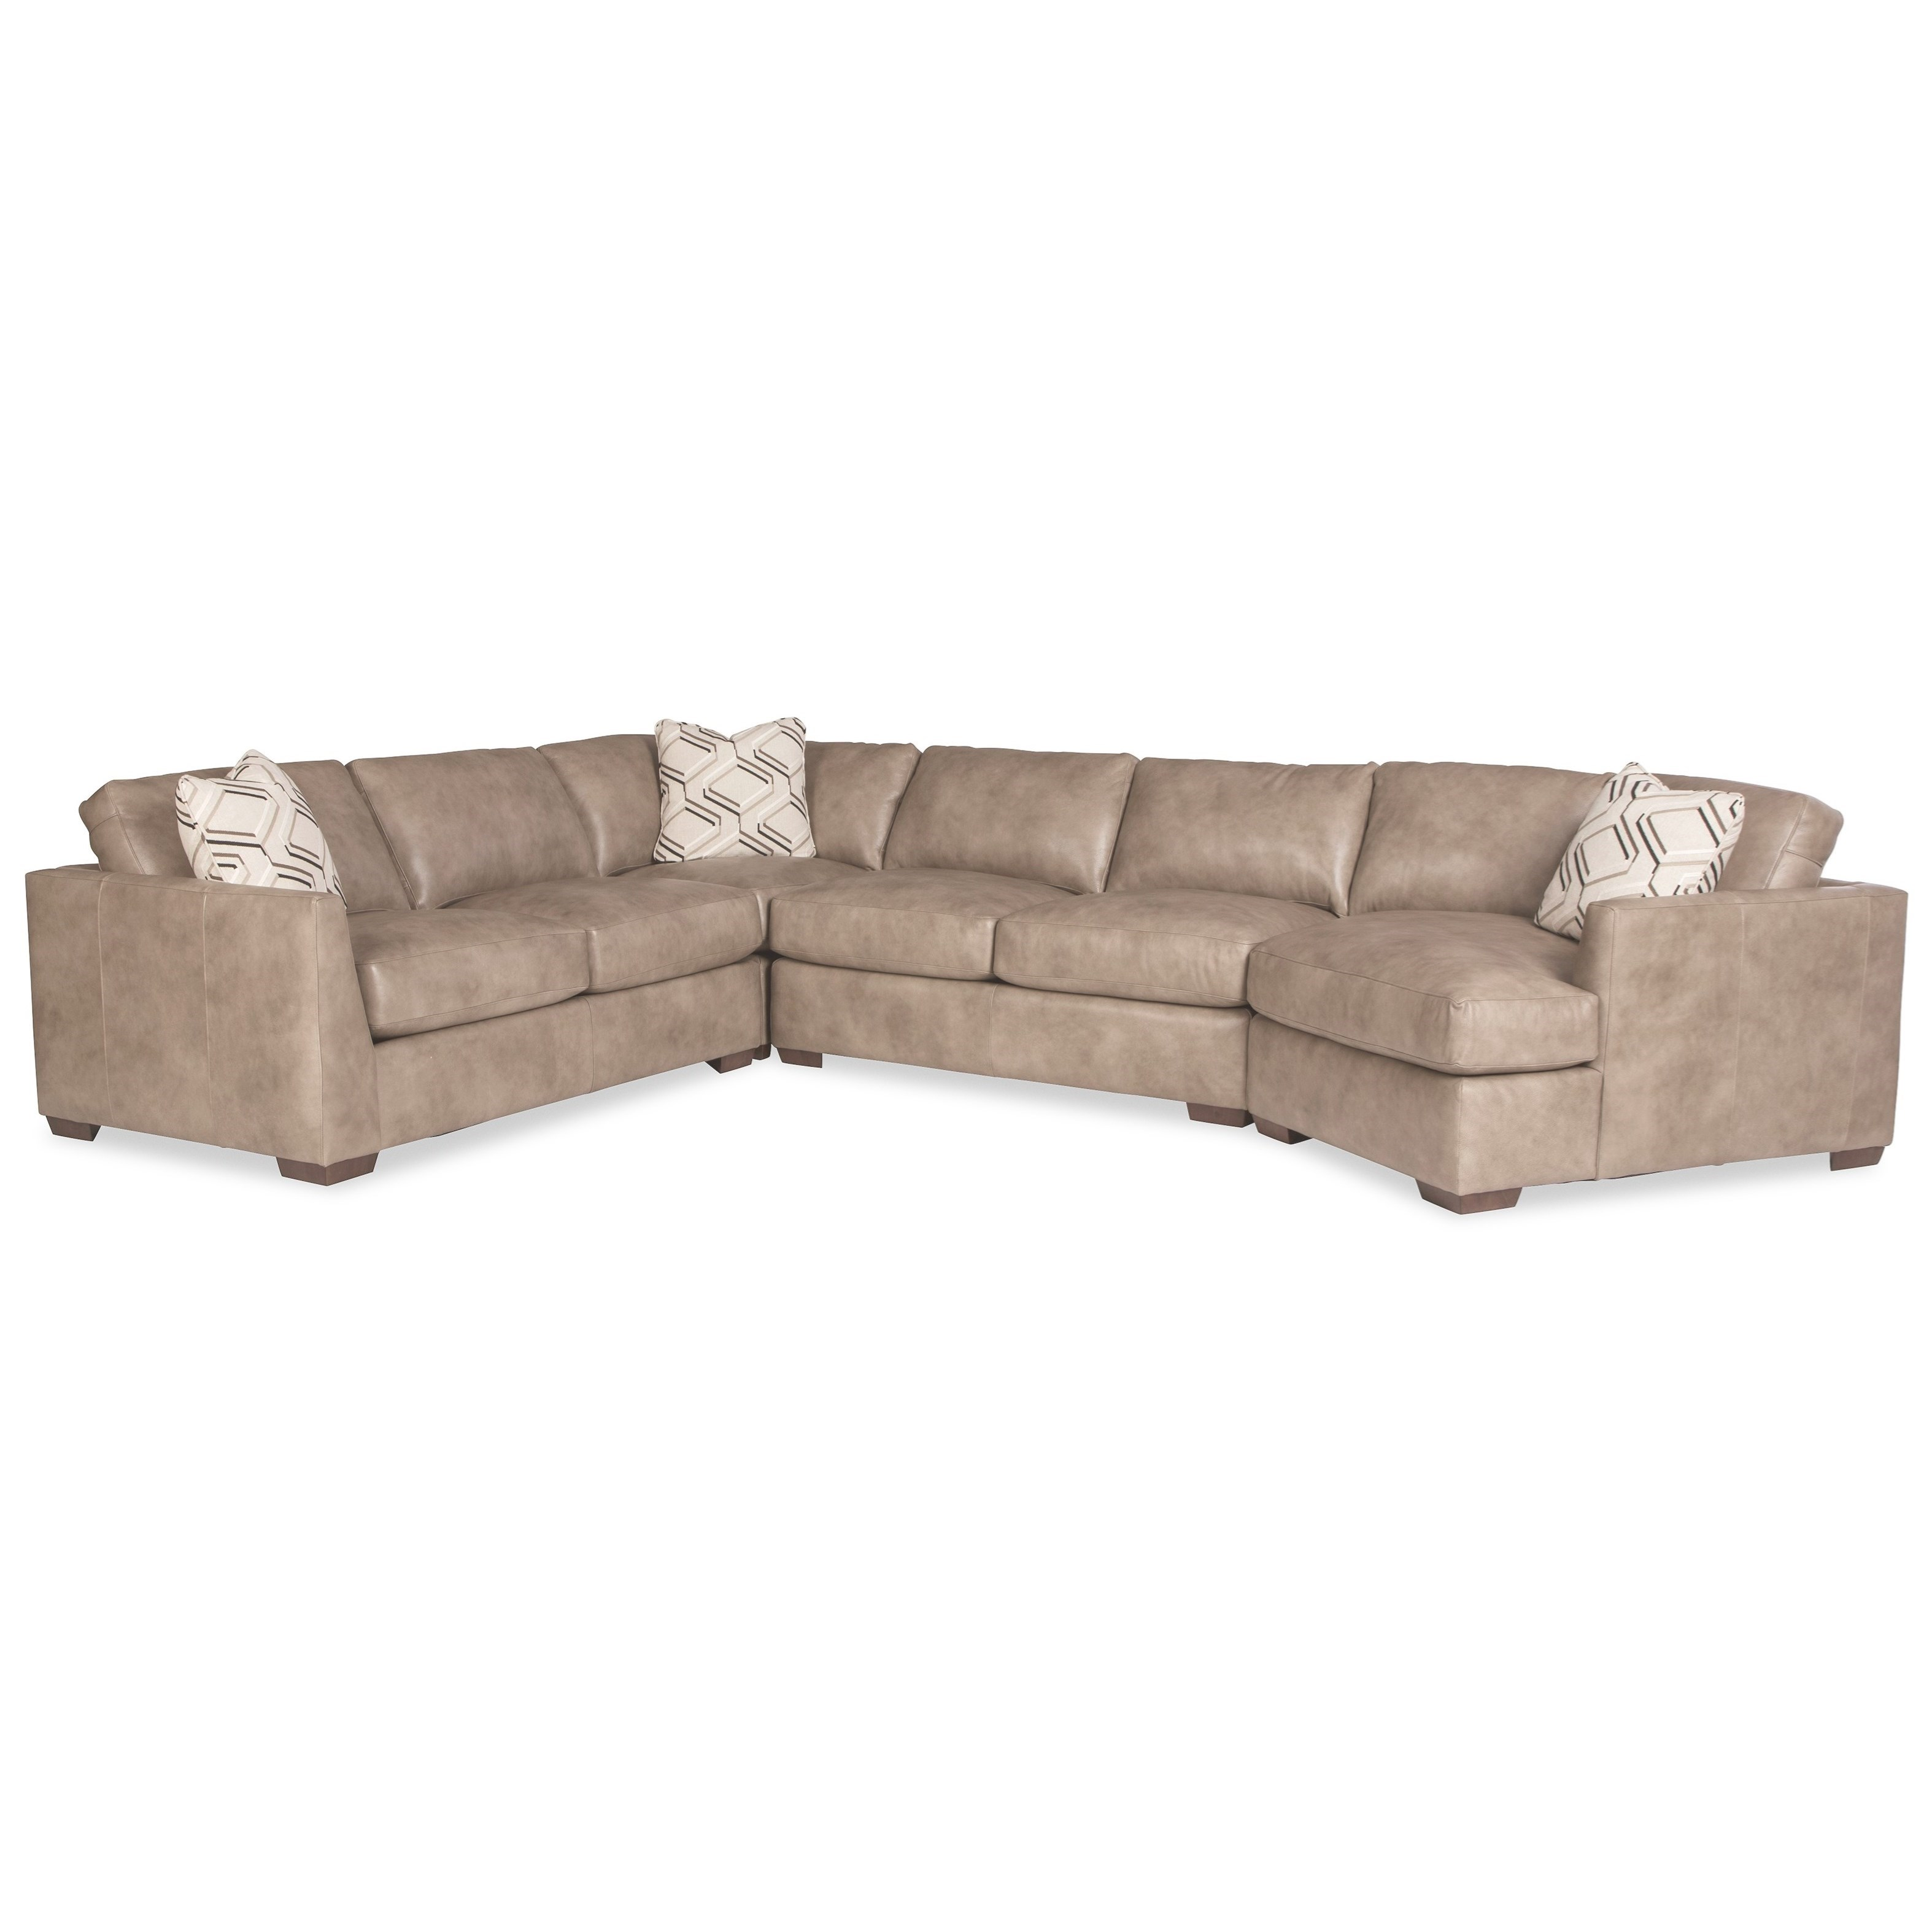 L783950 5-Seat Sectional Sofa w/RAF Cuddler & Pillow by Craftmaster at Baer's Furniture